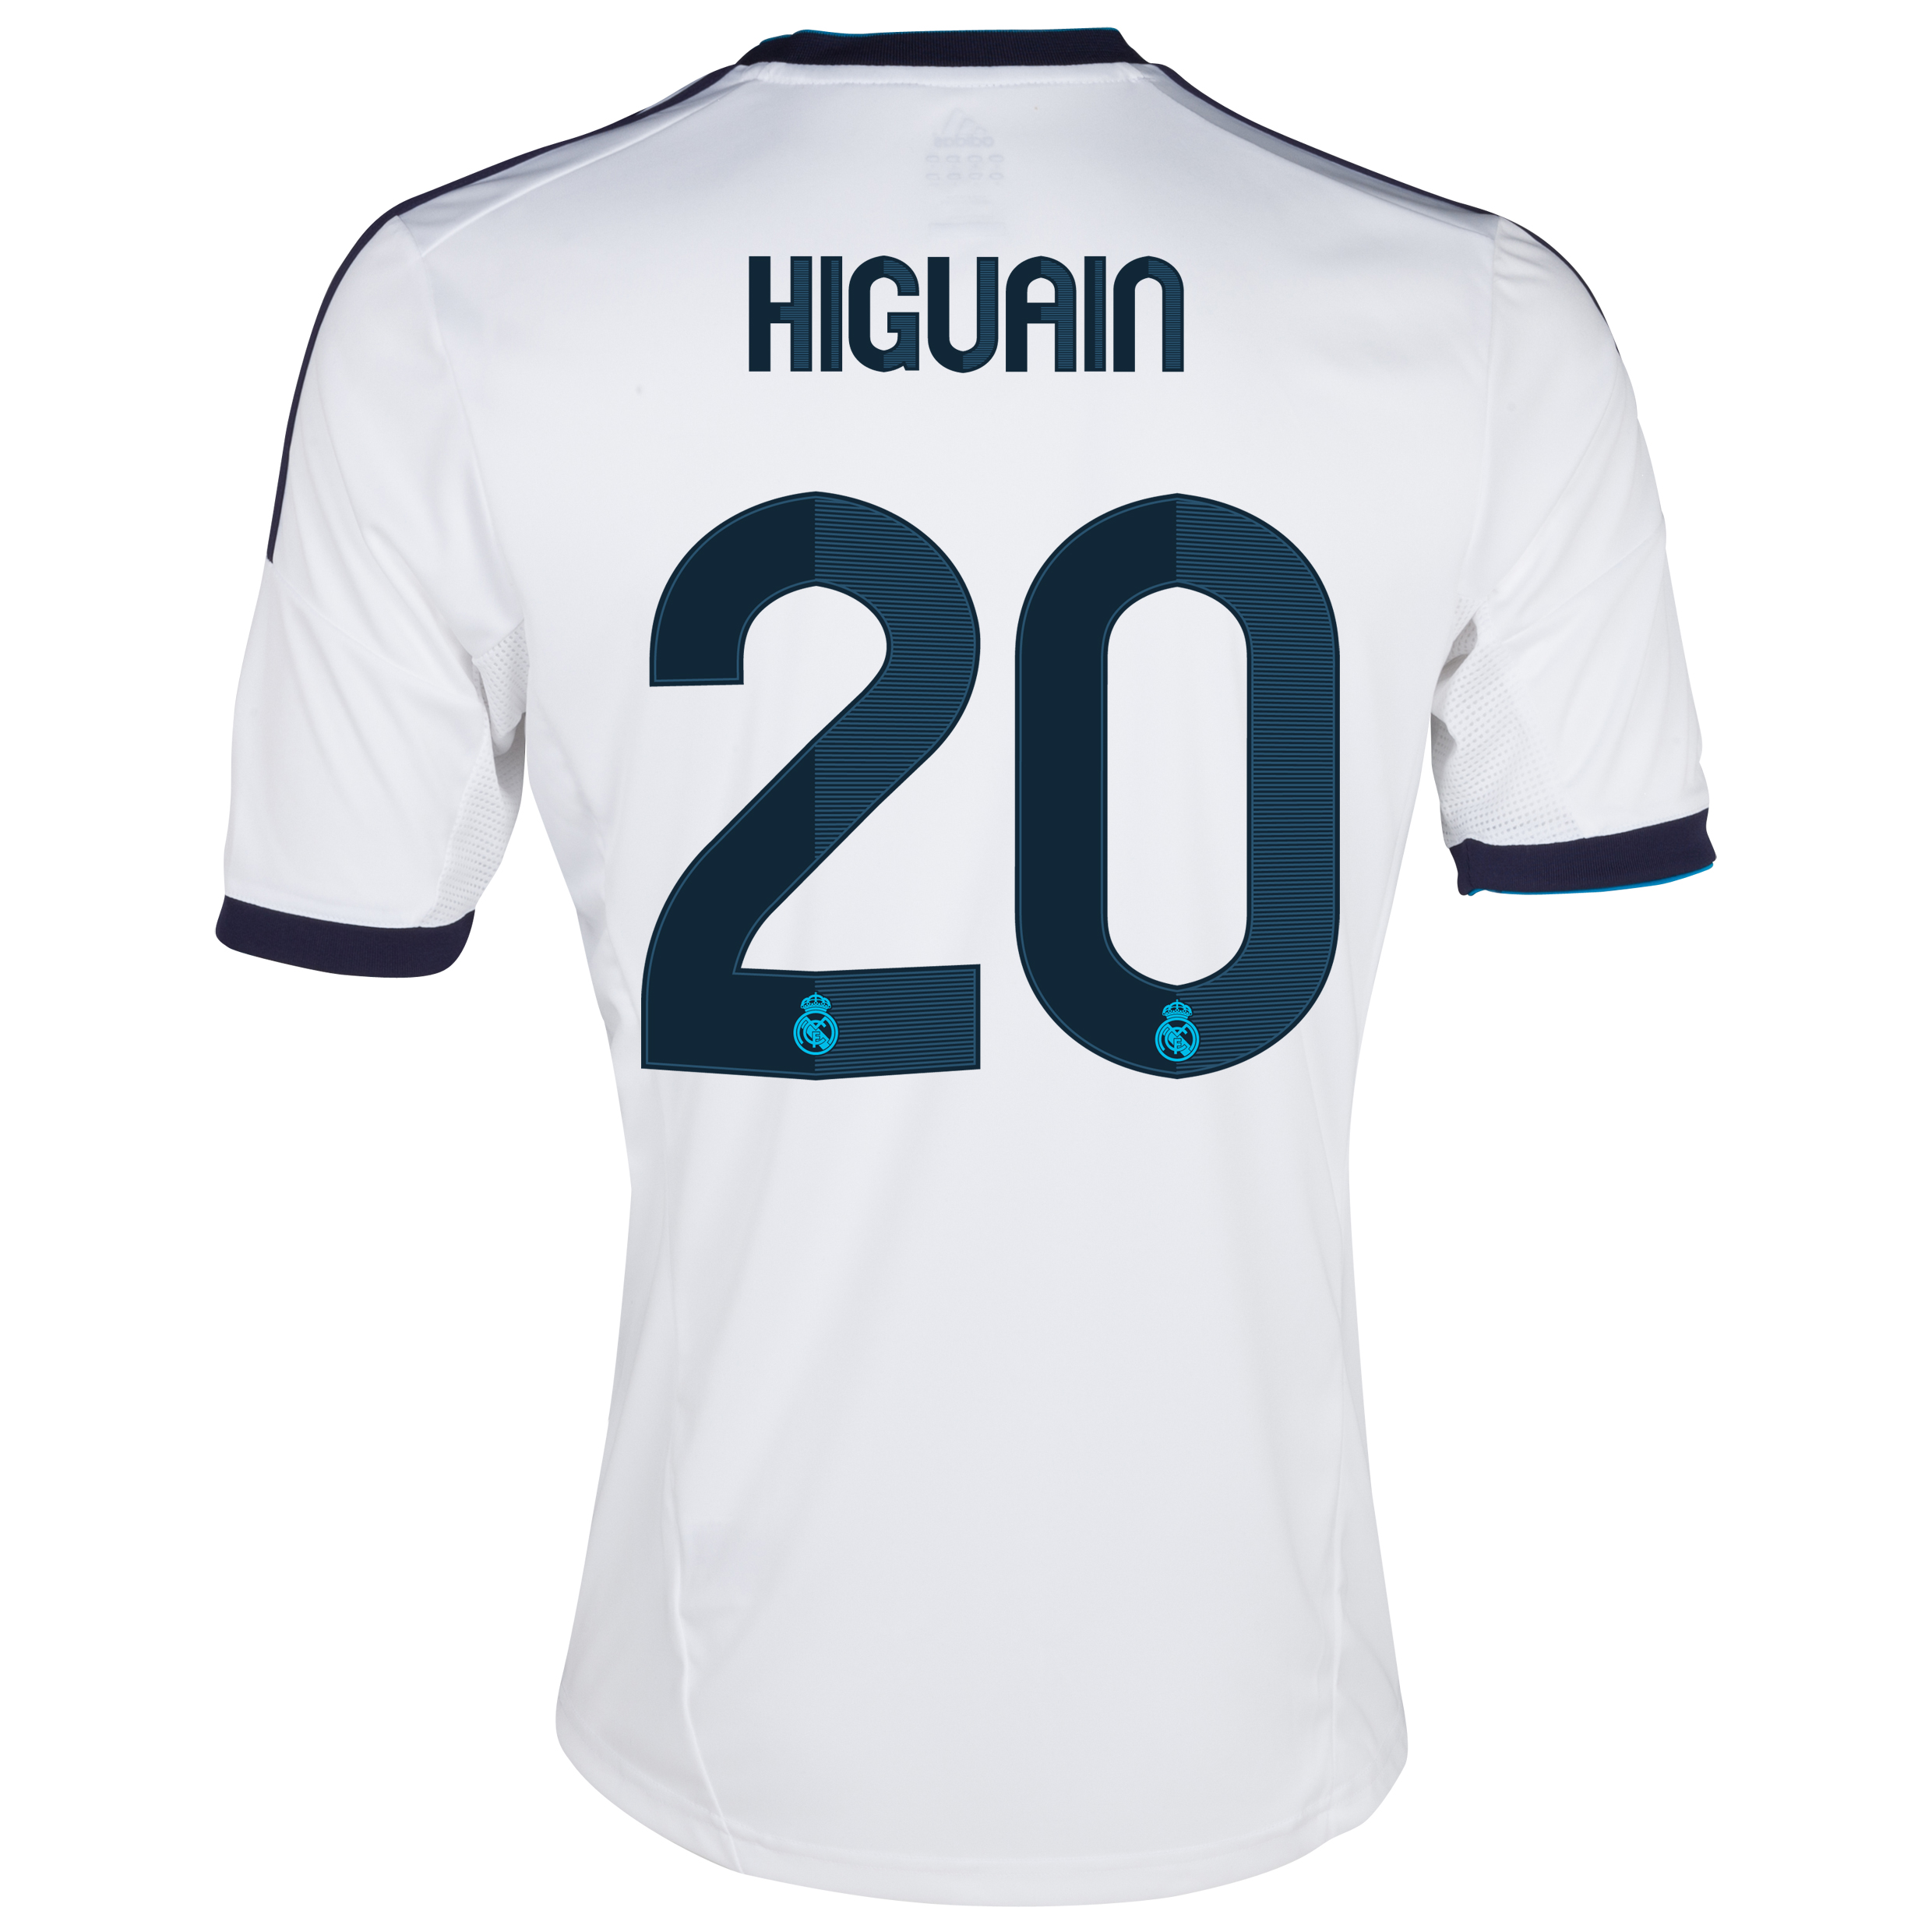 Camiseta 1 equipacin del Real Madrid 2012/13 Cadete con Higuan 20